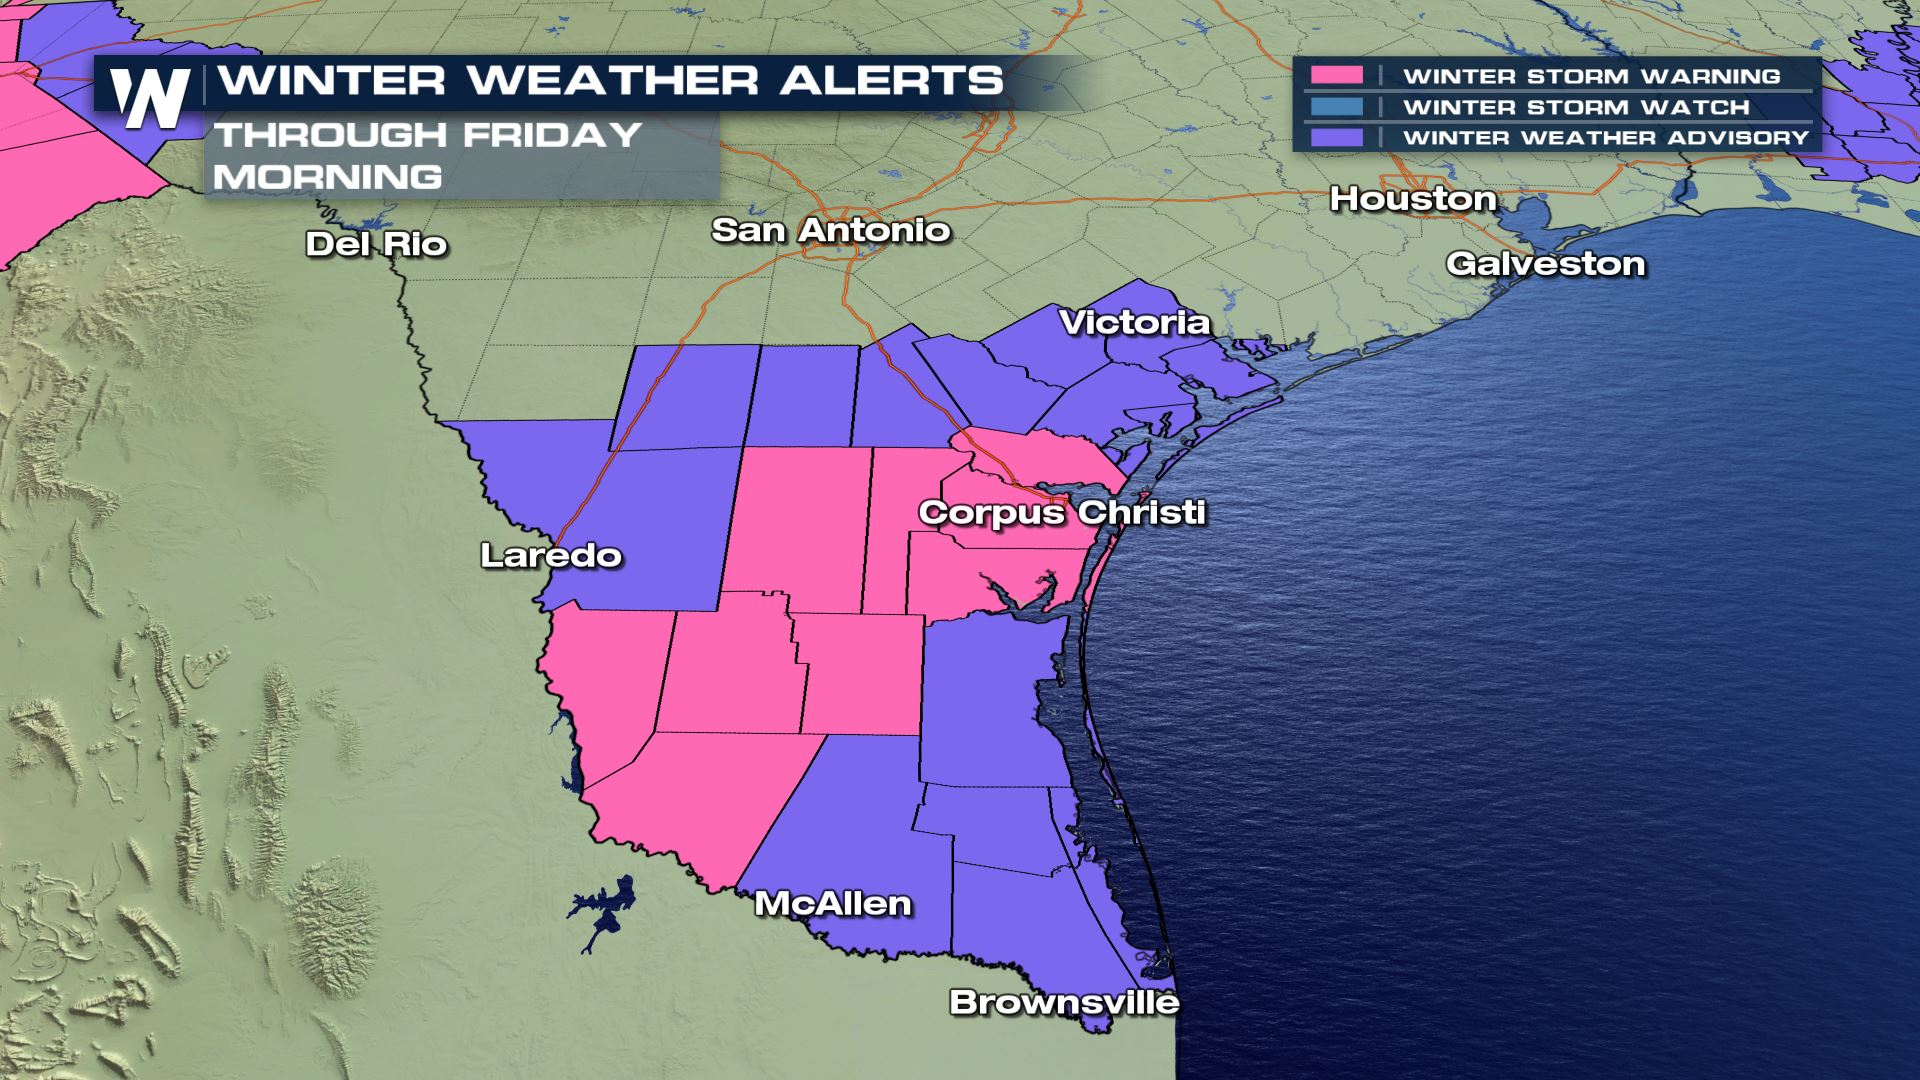 Rare Winter Storm Warning in Corpus Christi, Texas